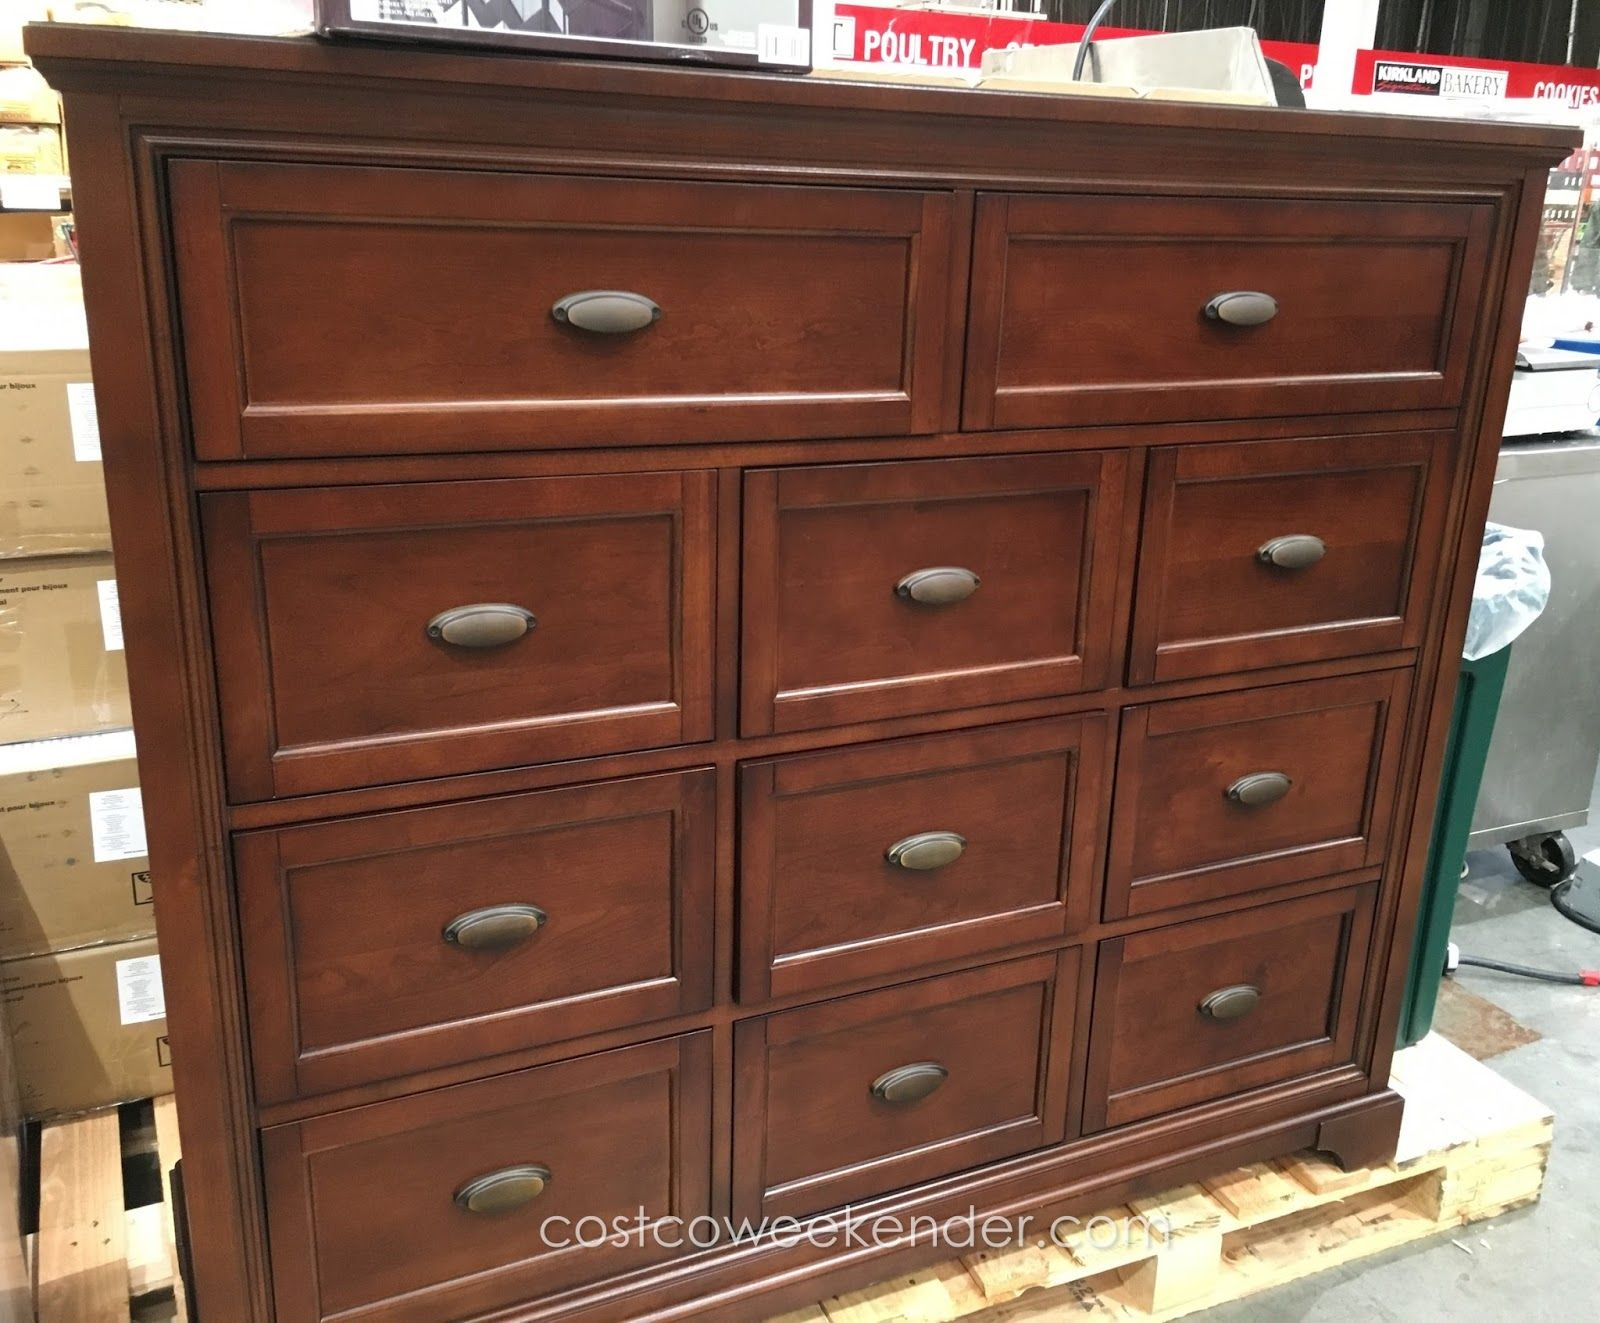 universal furniture broadmoore gentleman s chest at costco 15021 | 1d3300d88e6dca564ba1800fc08500bf